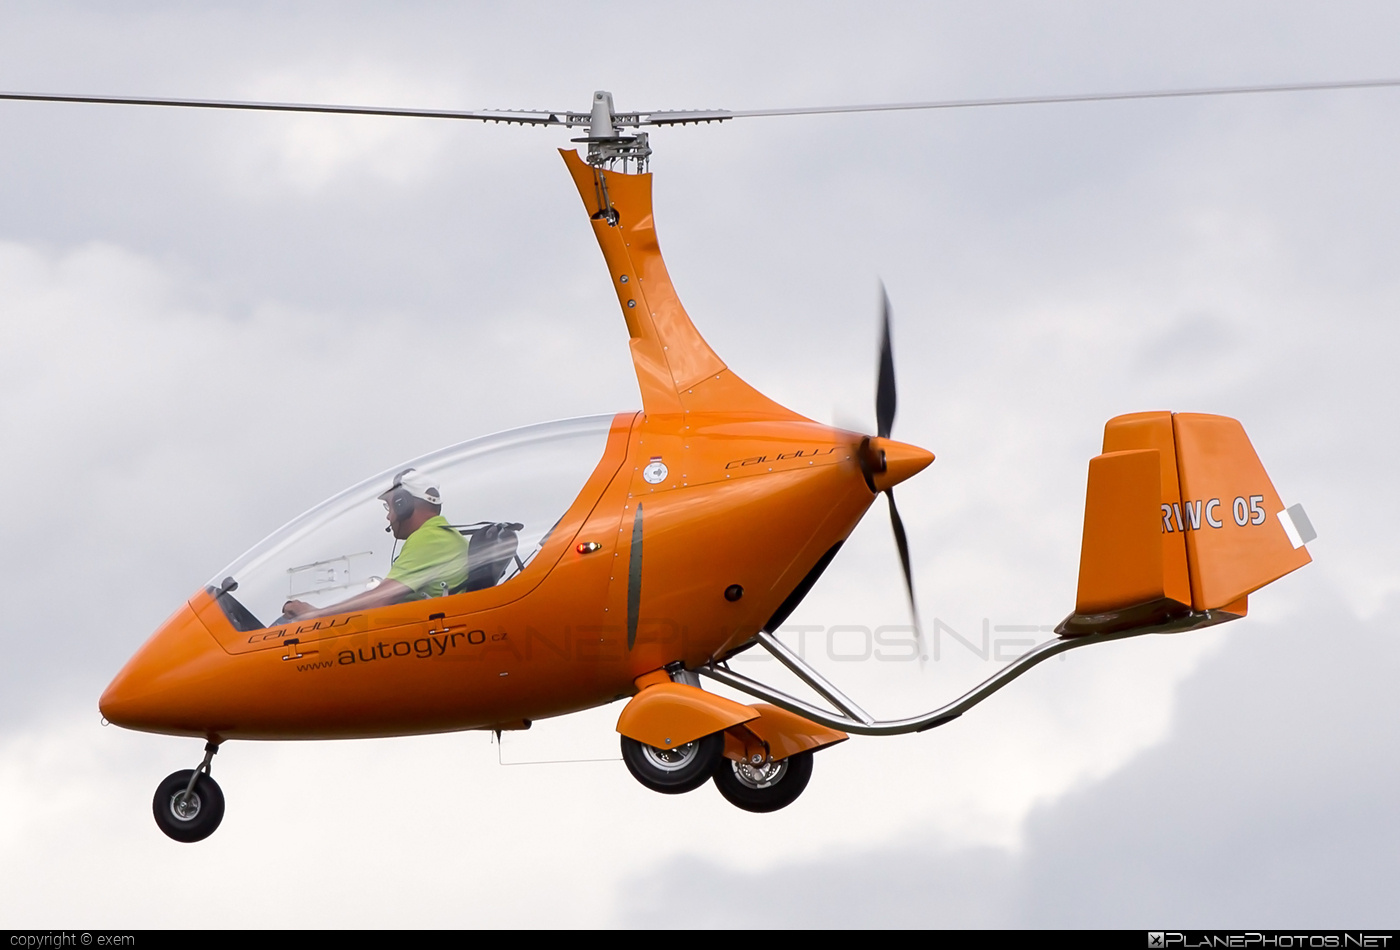 AutoGyro Calidus - OK-RWC 05 operated by Private operator #autogyro